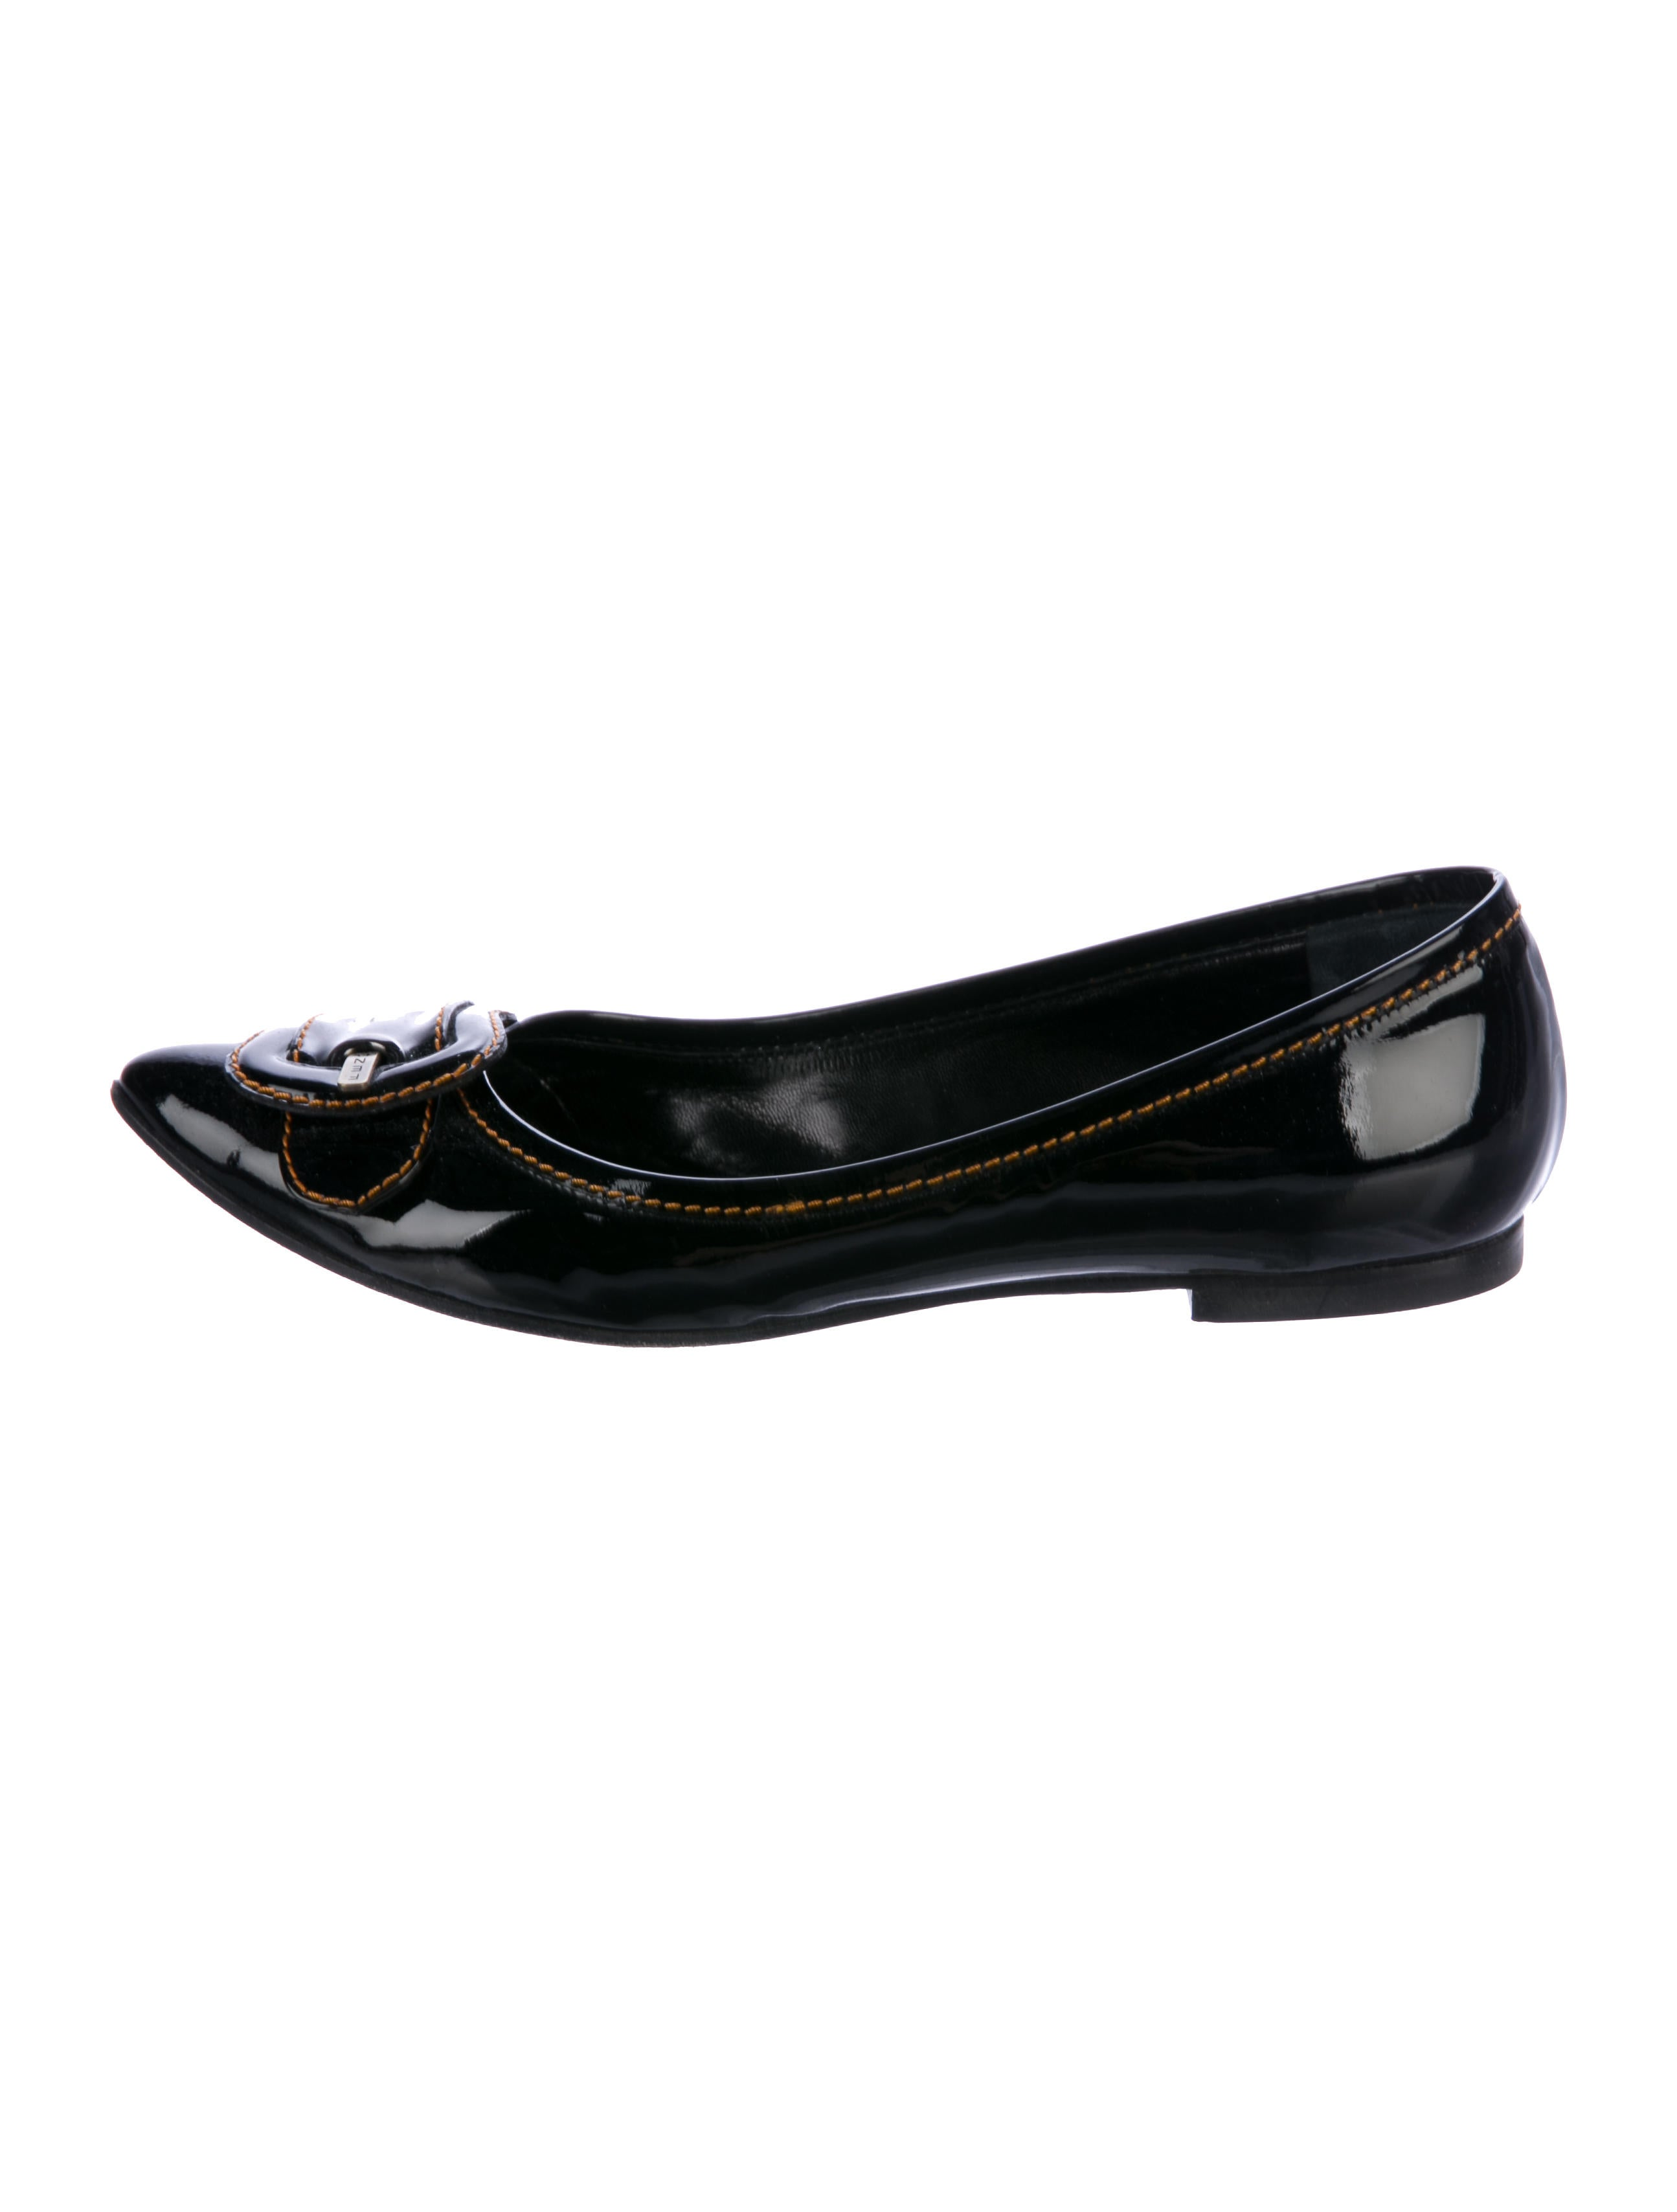 Fendi Patent Leather Pointed-Toe Flats discount 100% guaranteed civTy